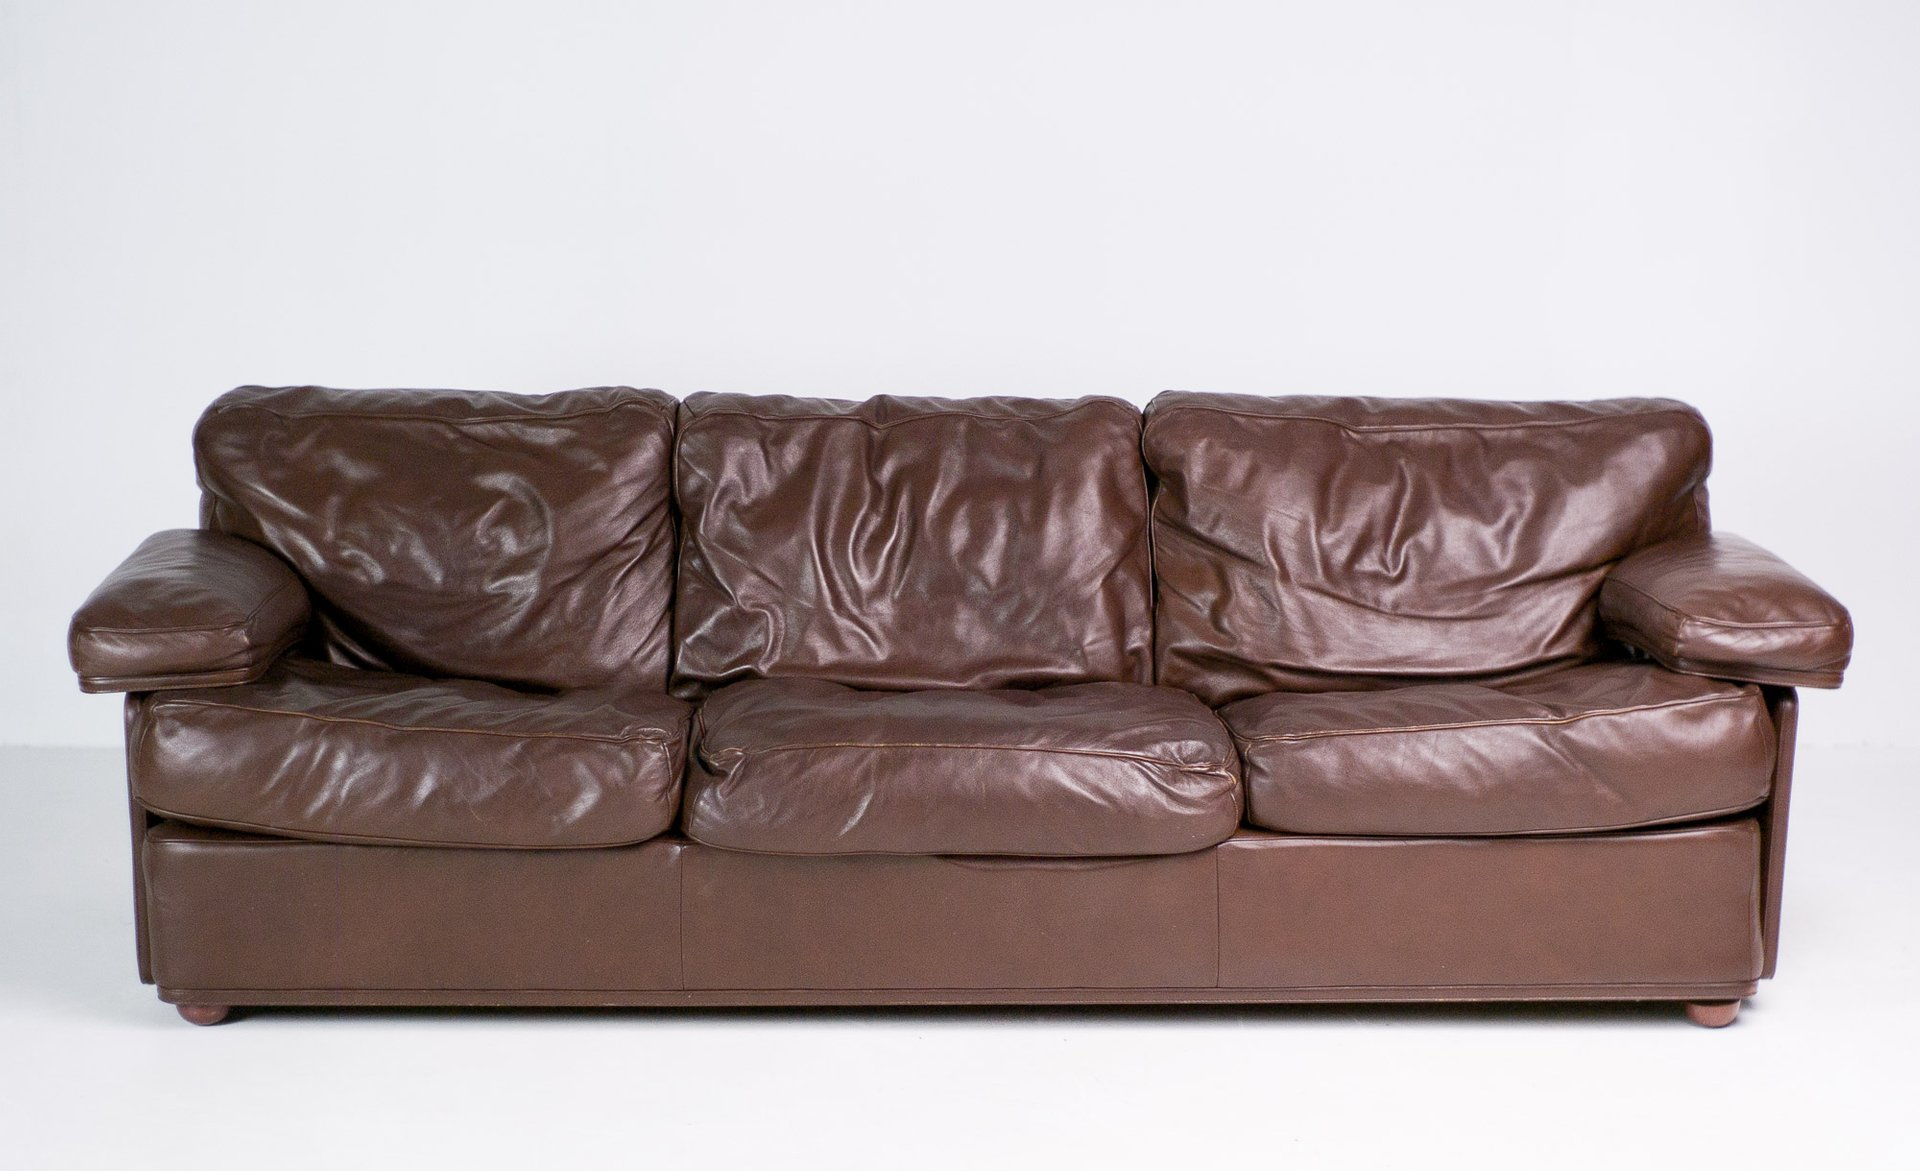 Italian Modern Sofa by Tito Agnoli for Poltrona Frau for sale at